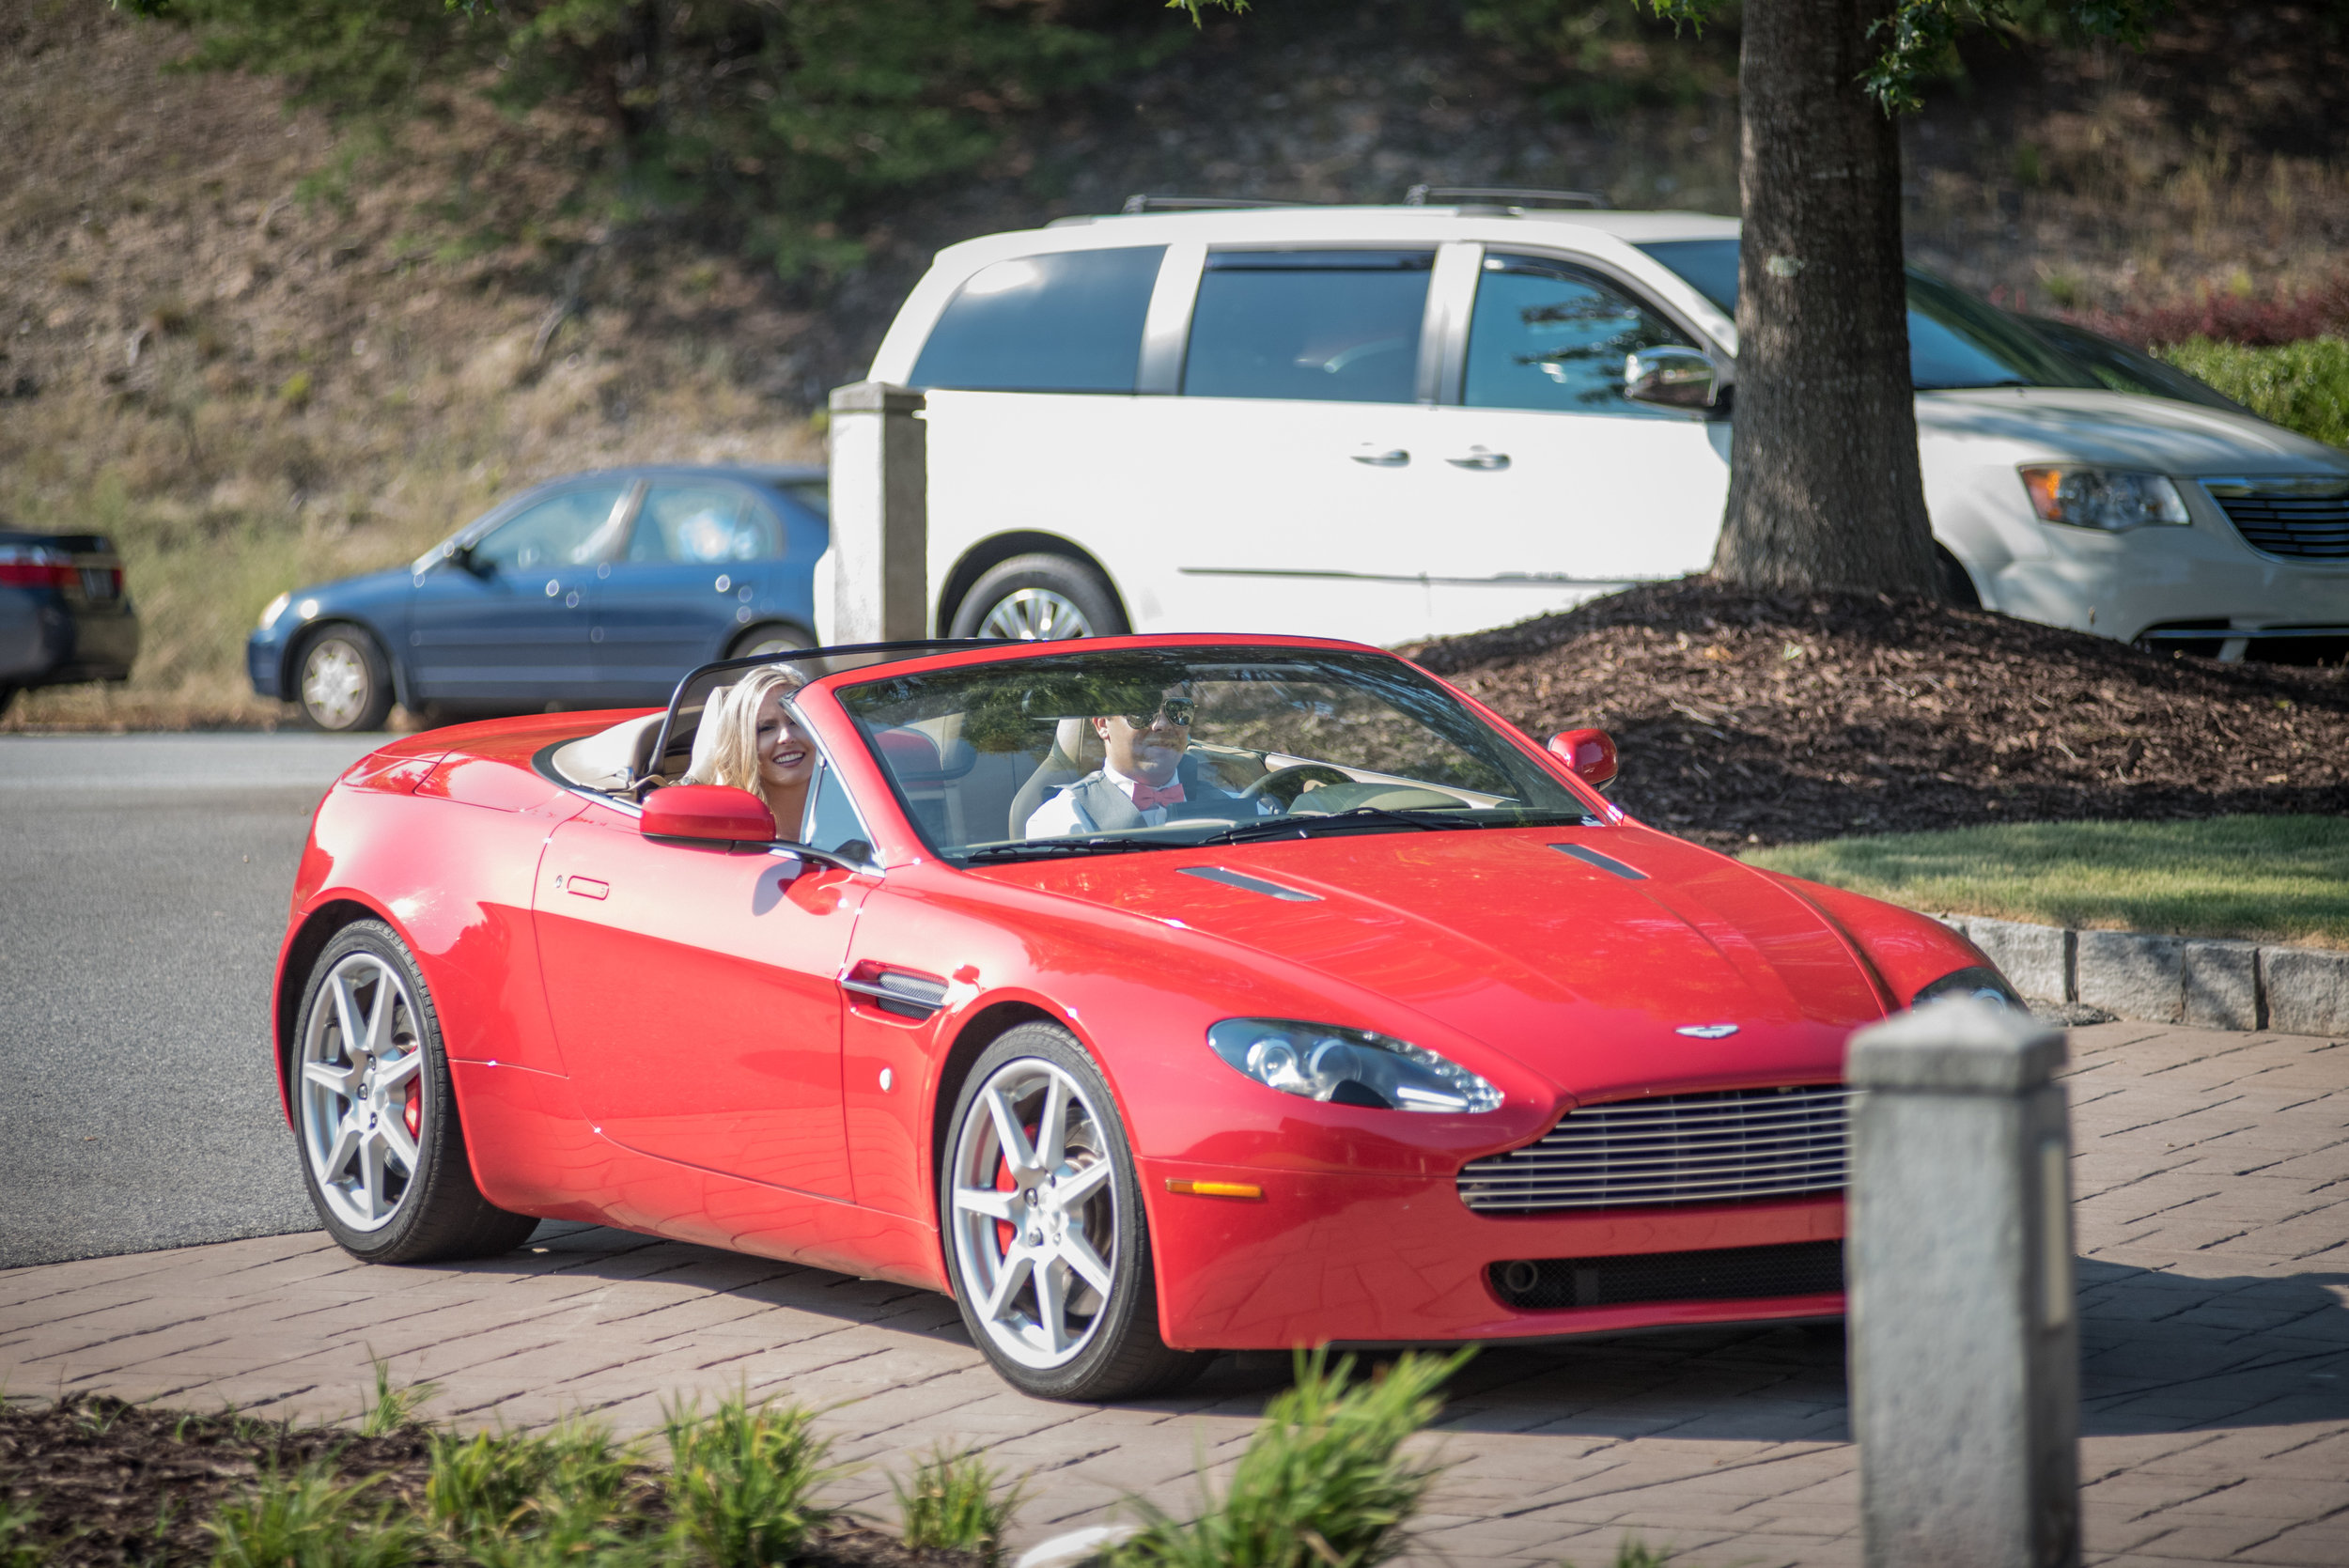 Prior to being introduced into the reception, our couple drove to the Lakehouse in style in a beautiful Aston Martin V8 Vantage Convertible.